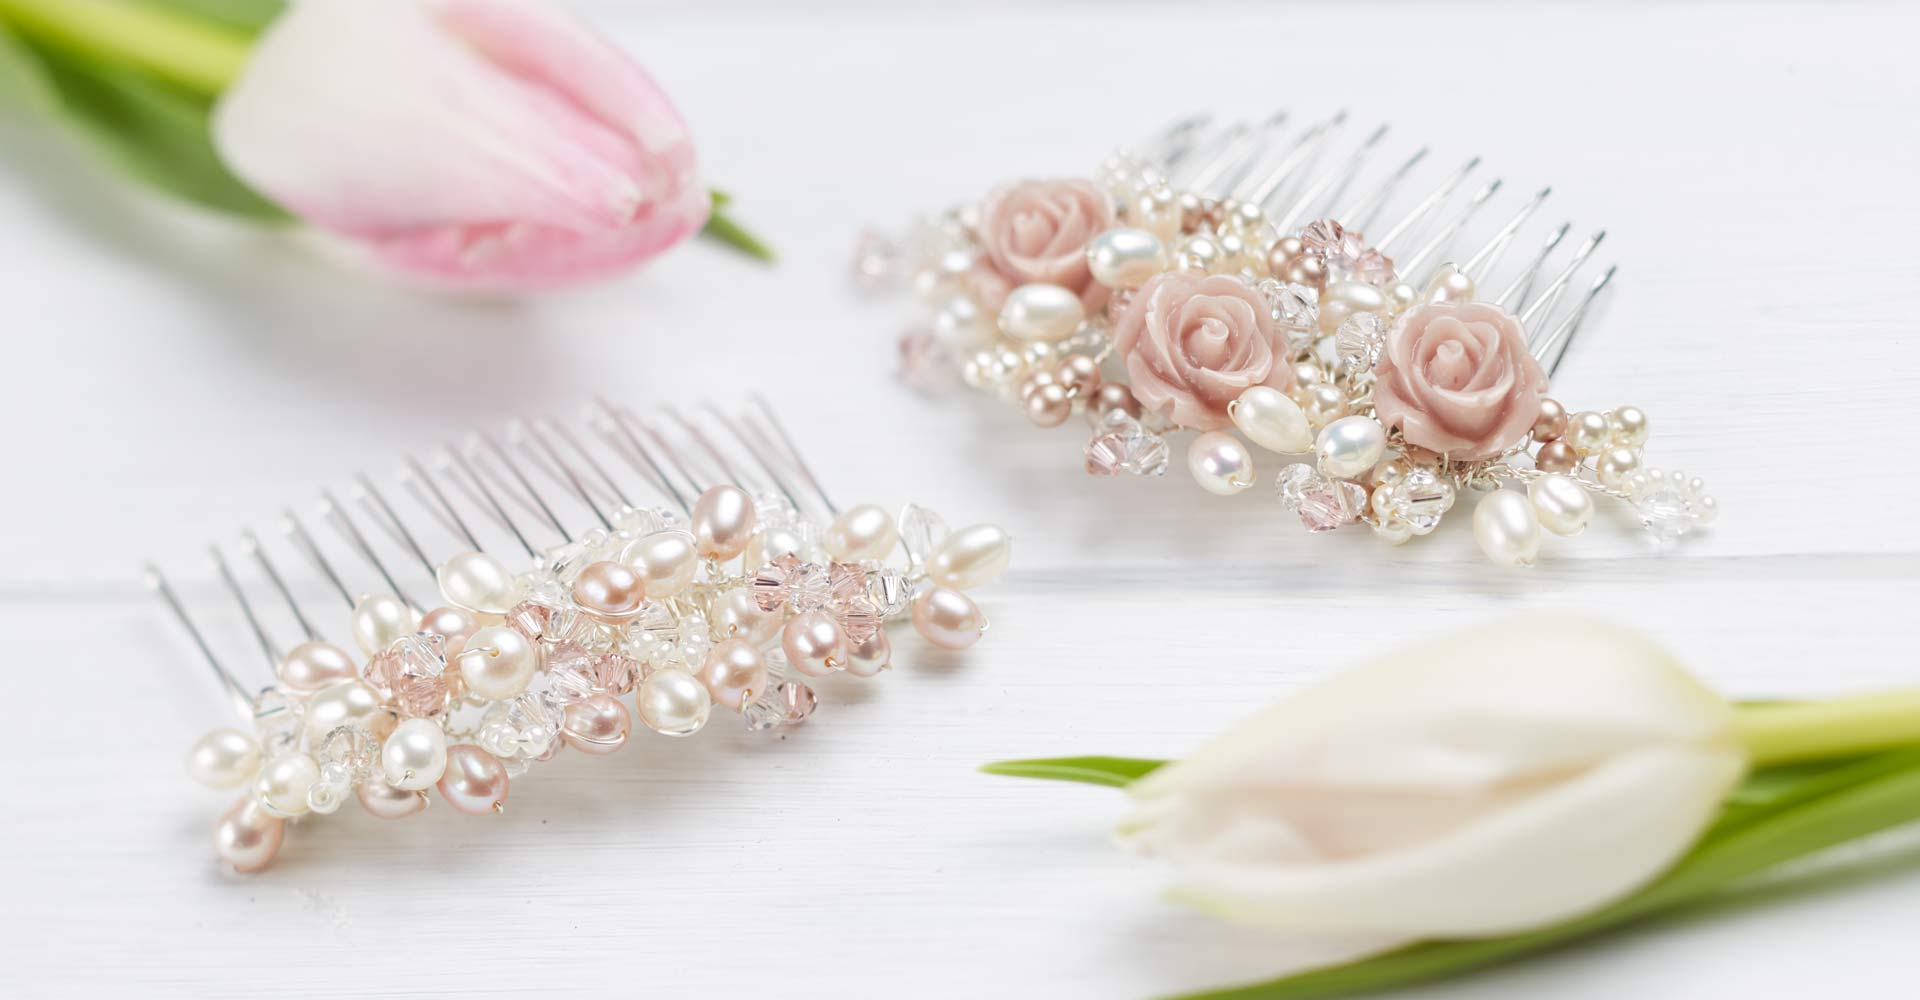 wedding accessories: handmade veils, lace boleros, jewellery and hair accessories